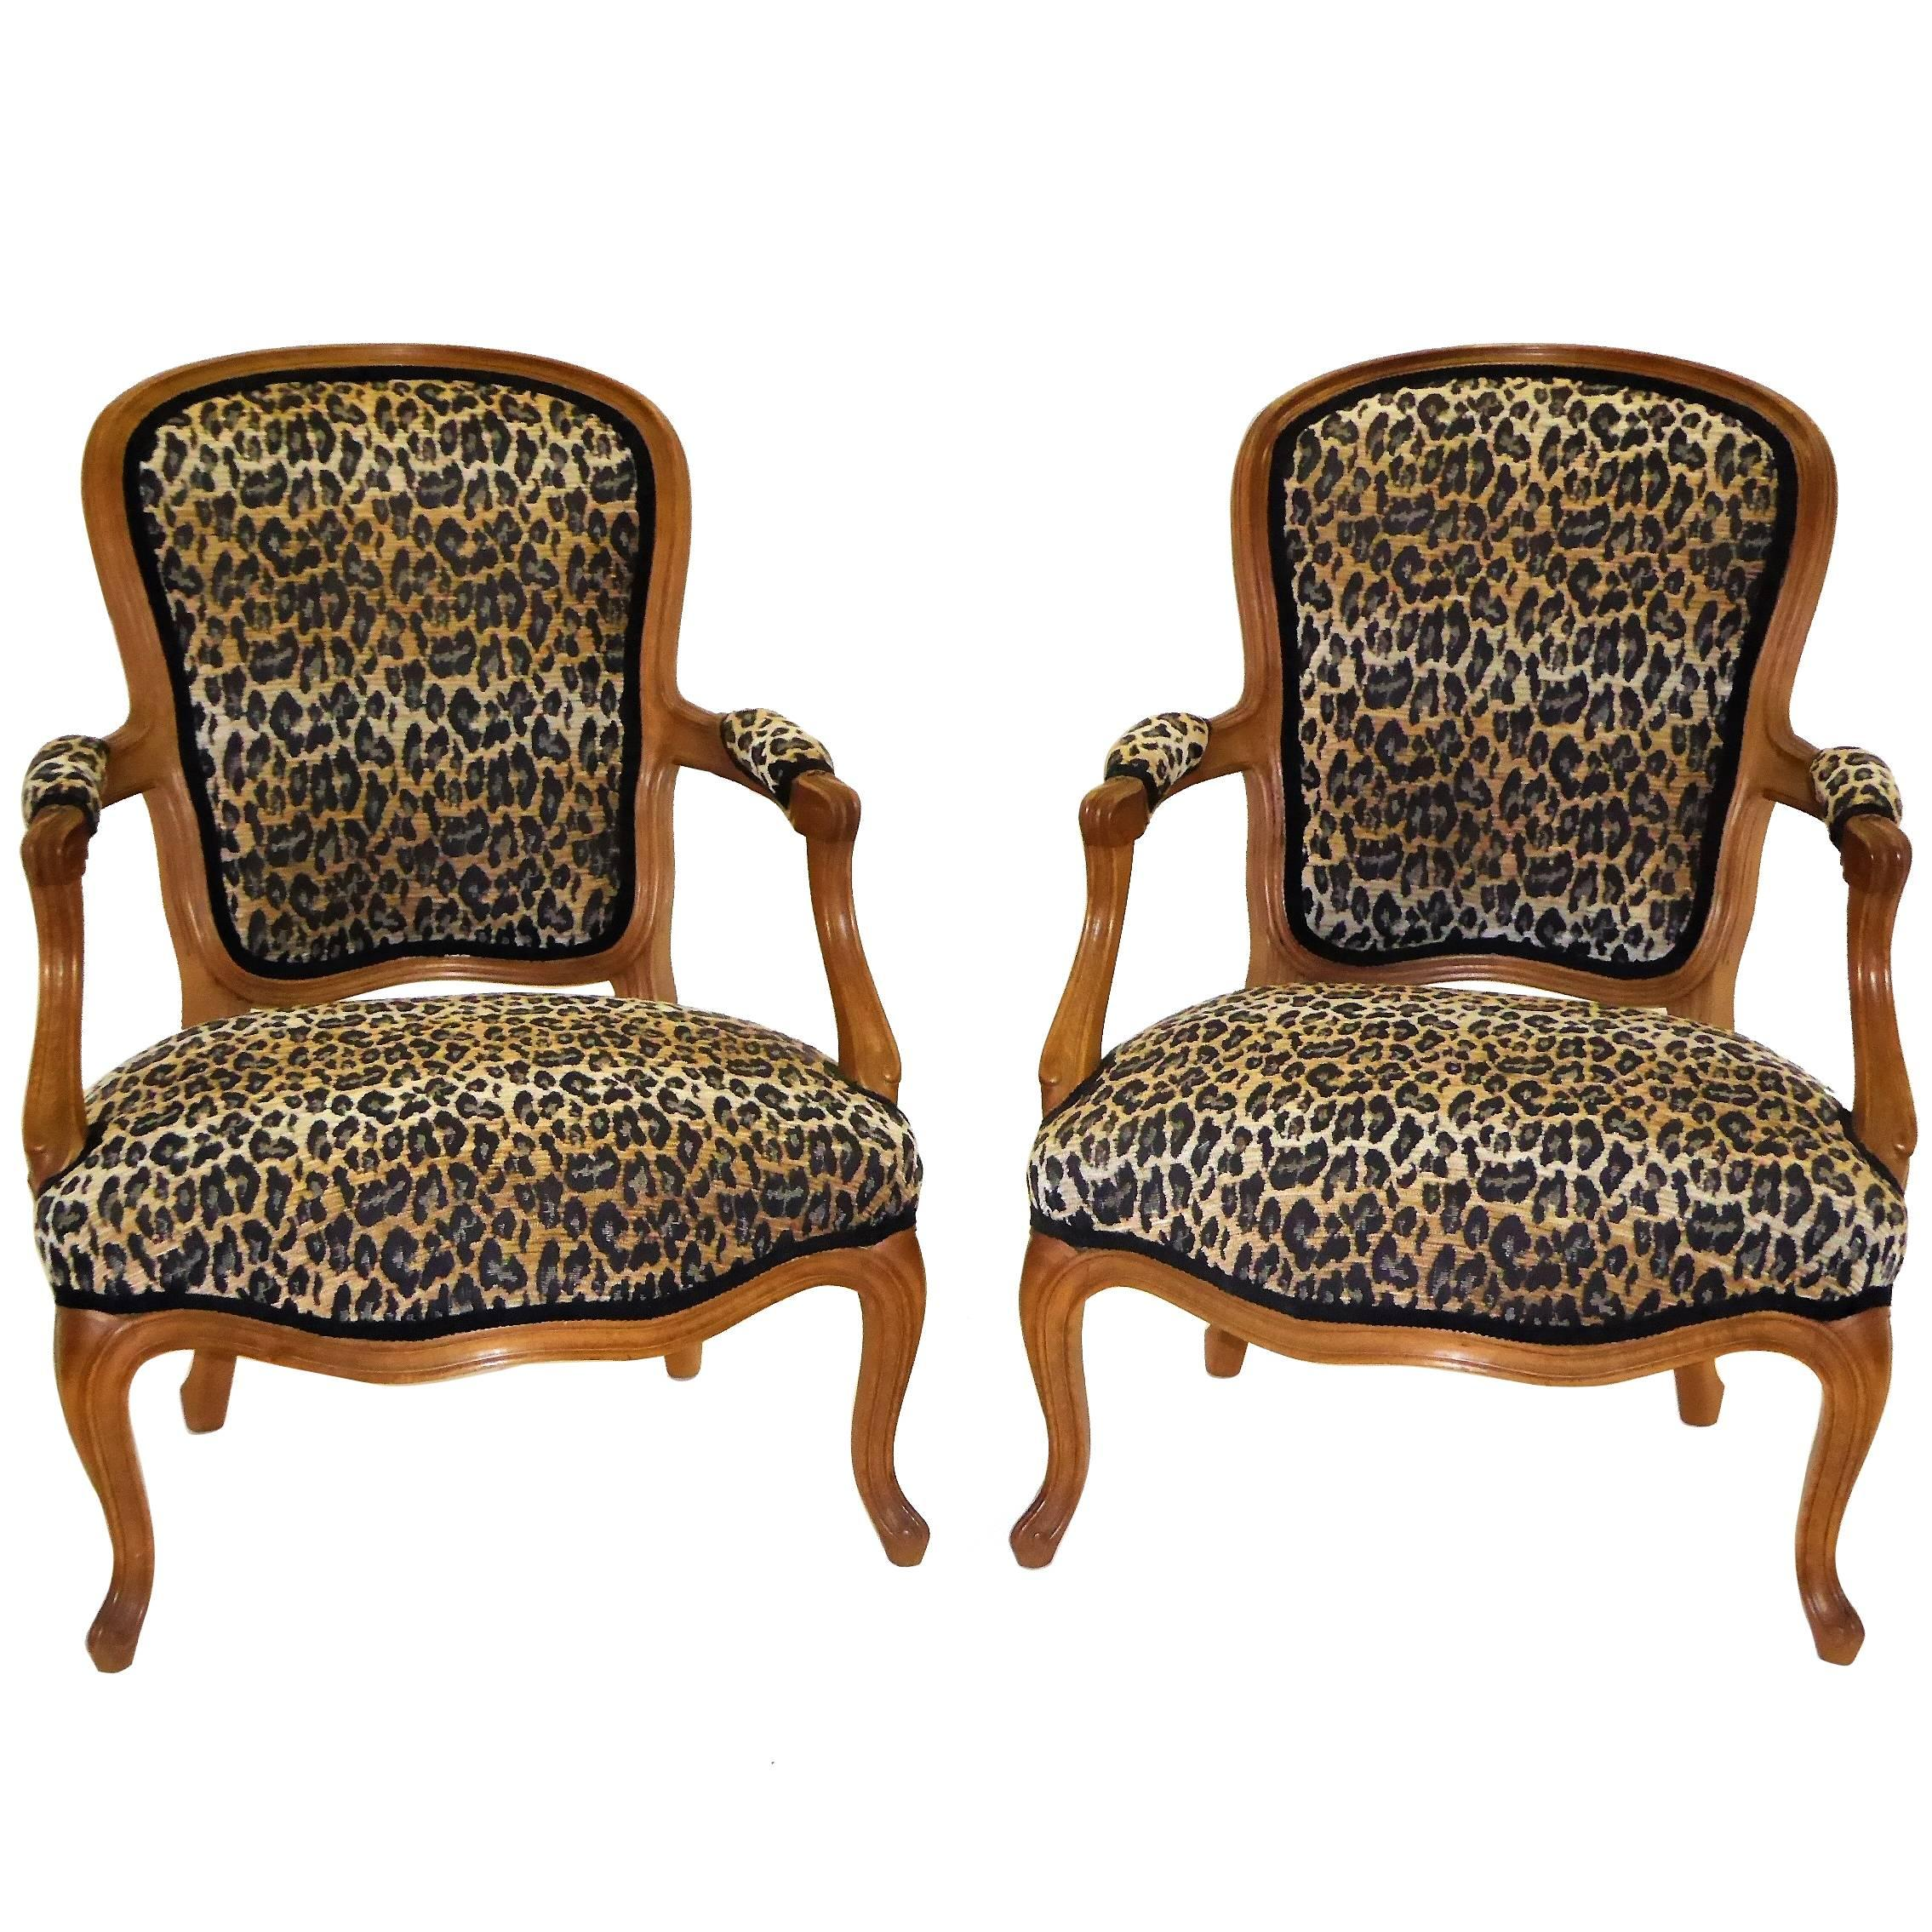 Fauteuils Chauffeuse Pair Of Louis Xv Style Chauffeuses Or Fauteuils By Saridis In Leopard Chenille